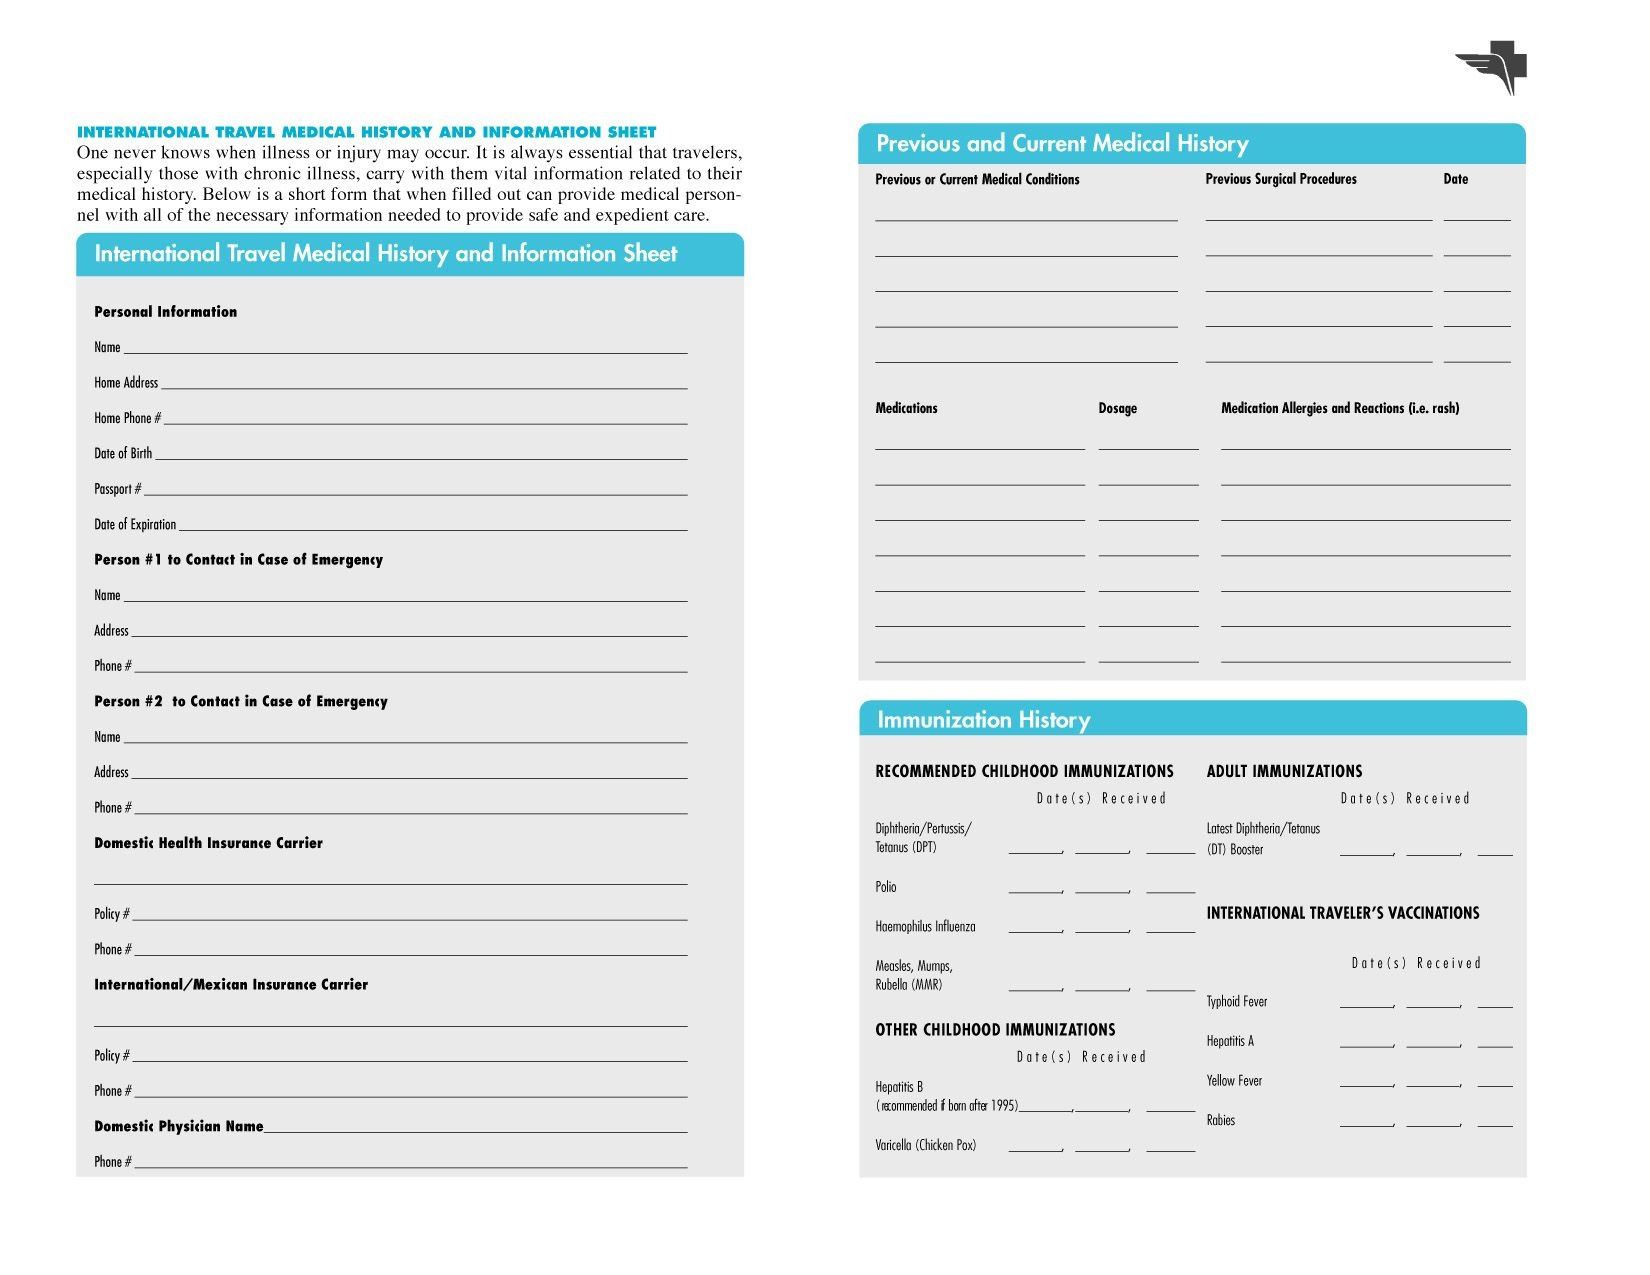 Free Printables | Free Printable Family Medical History Forms - Free Printable Medical Forms Kit